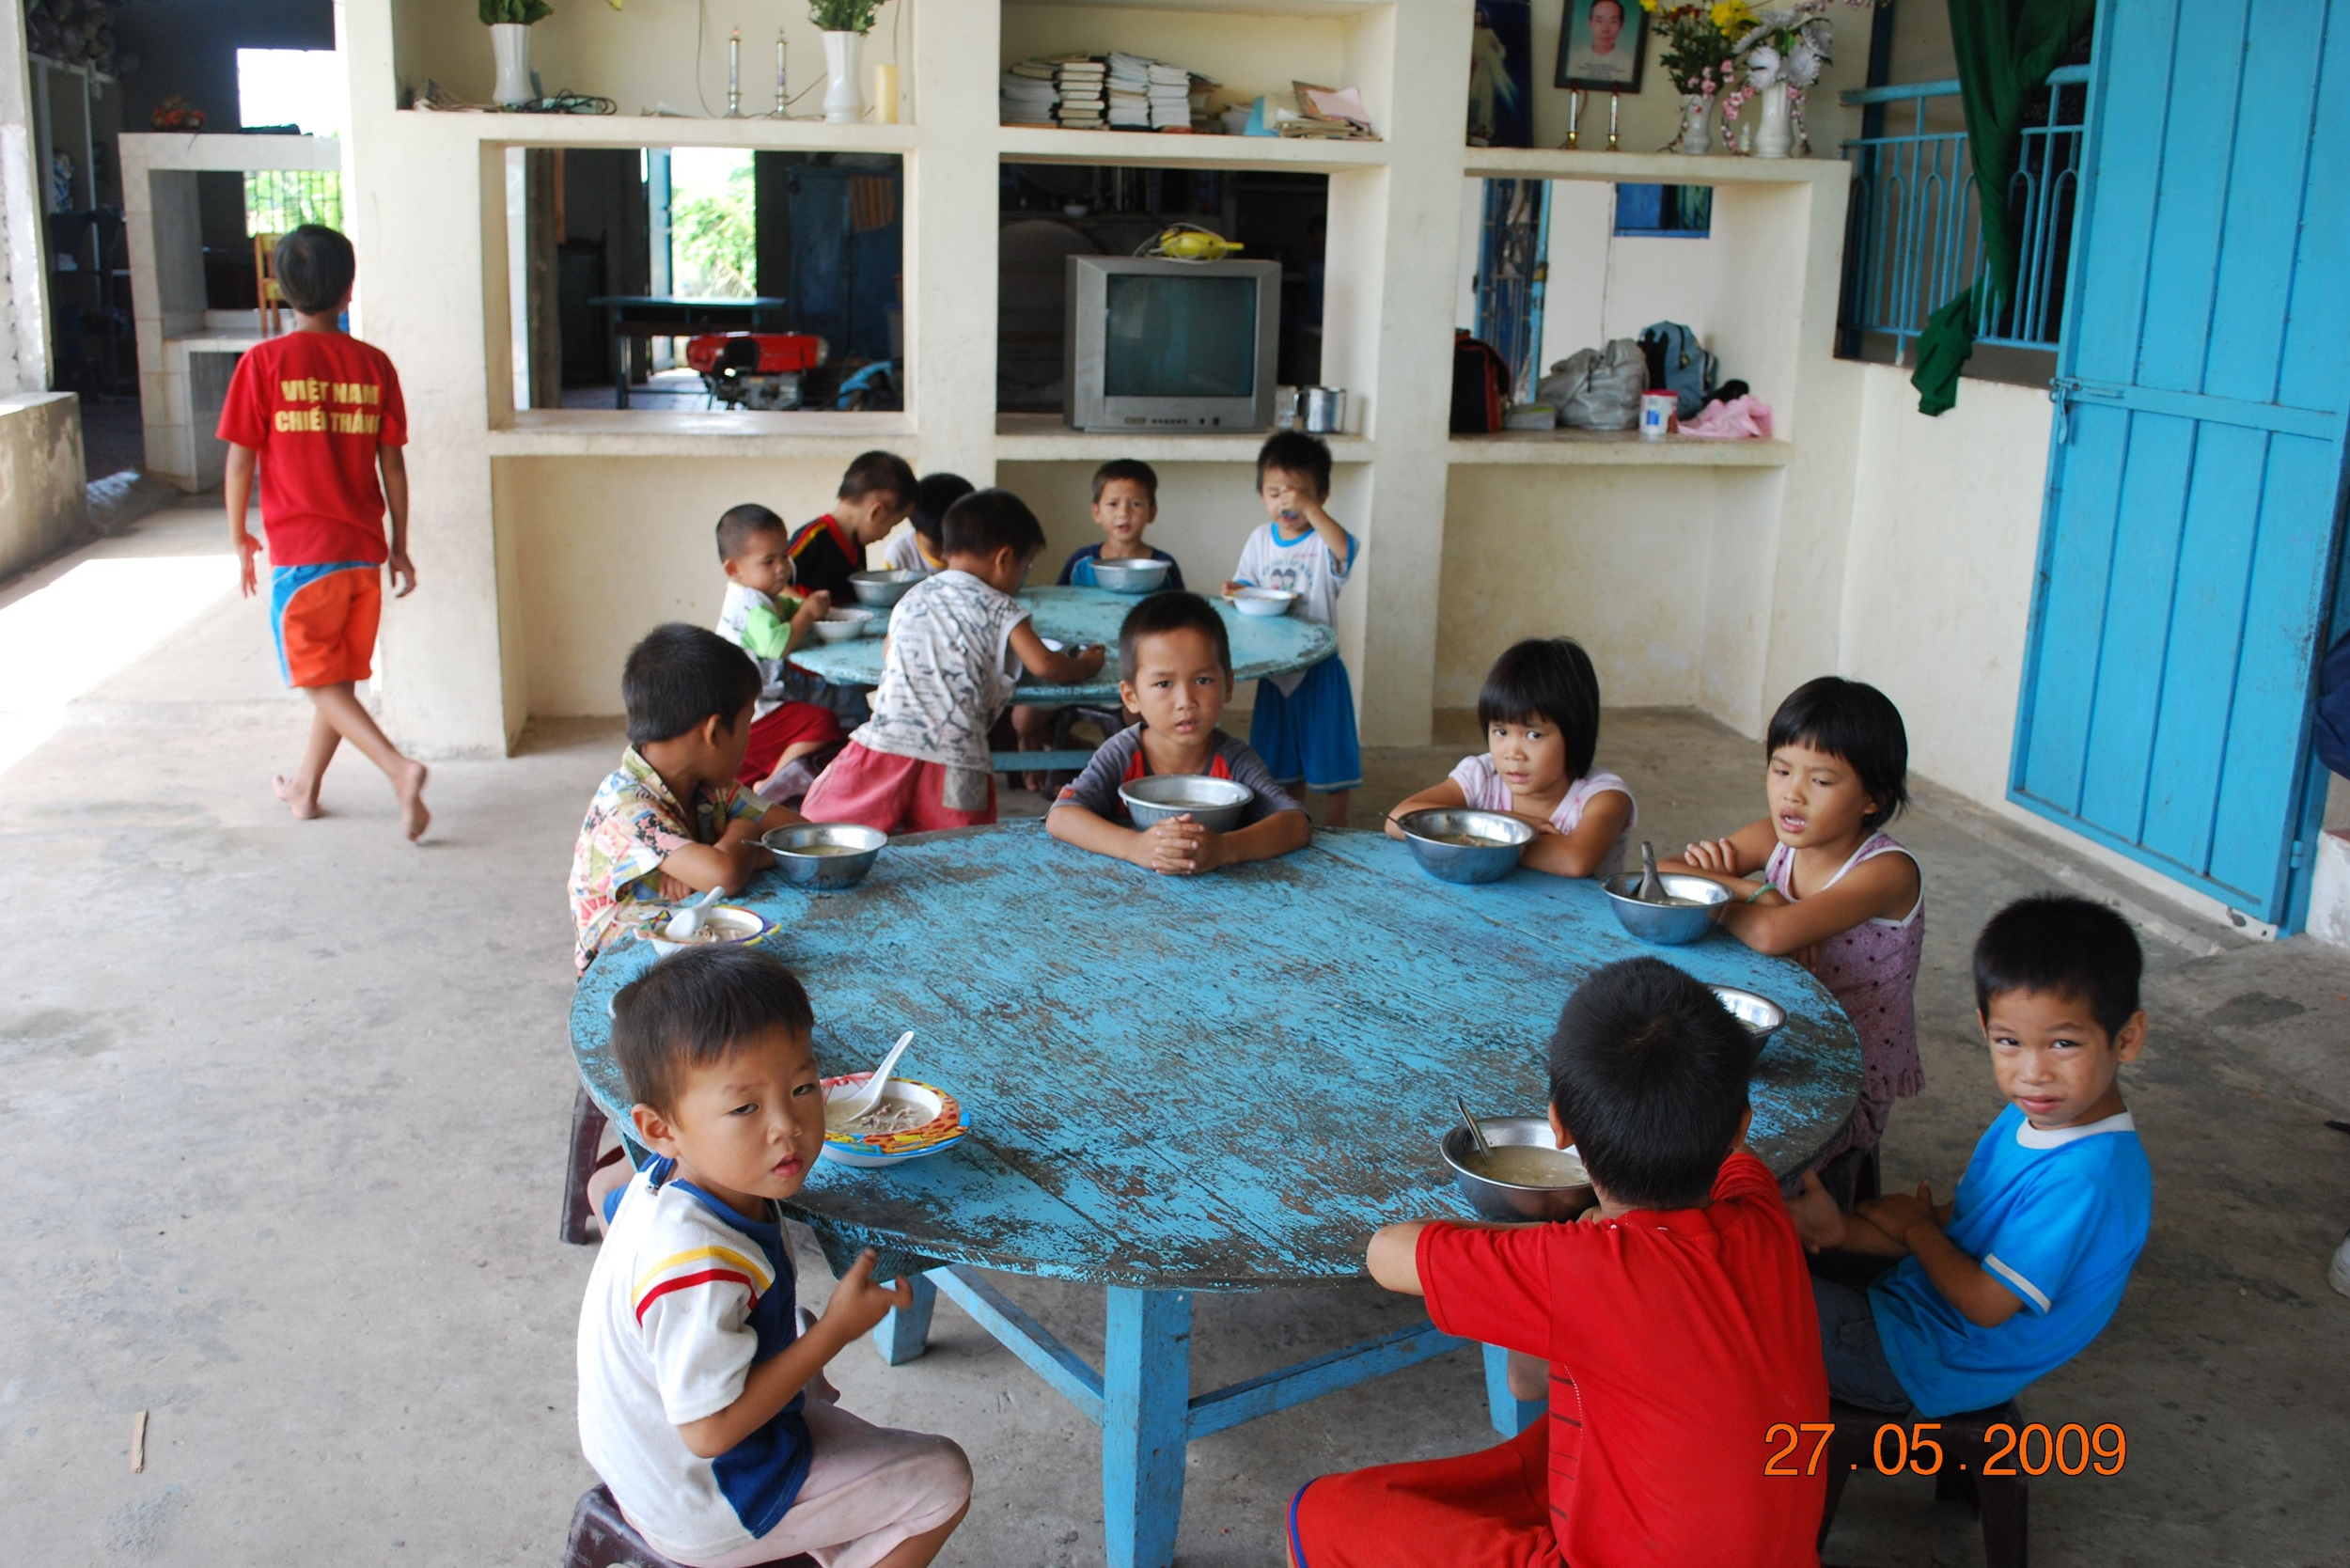 Mealtime at the Orphanage